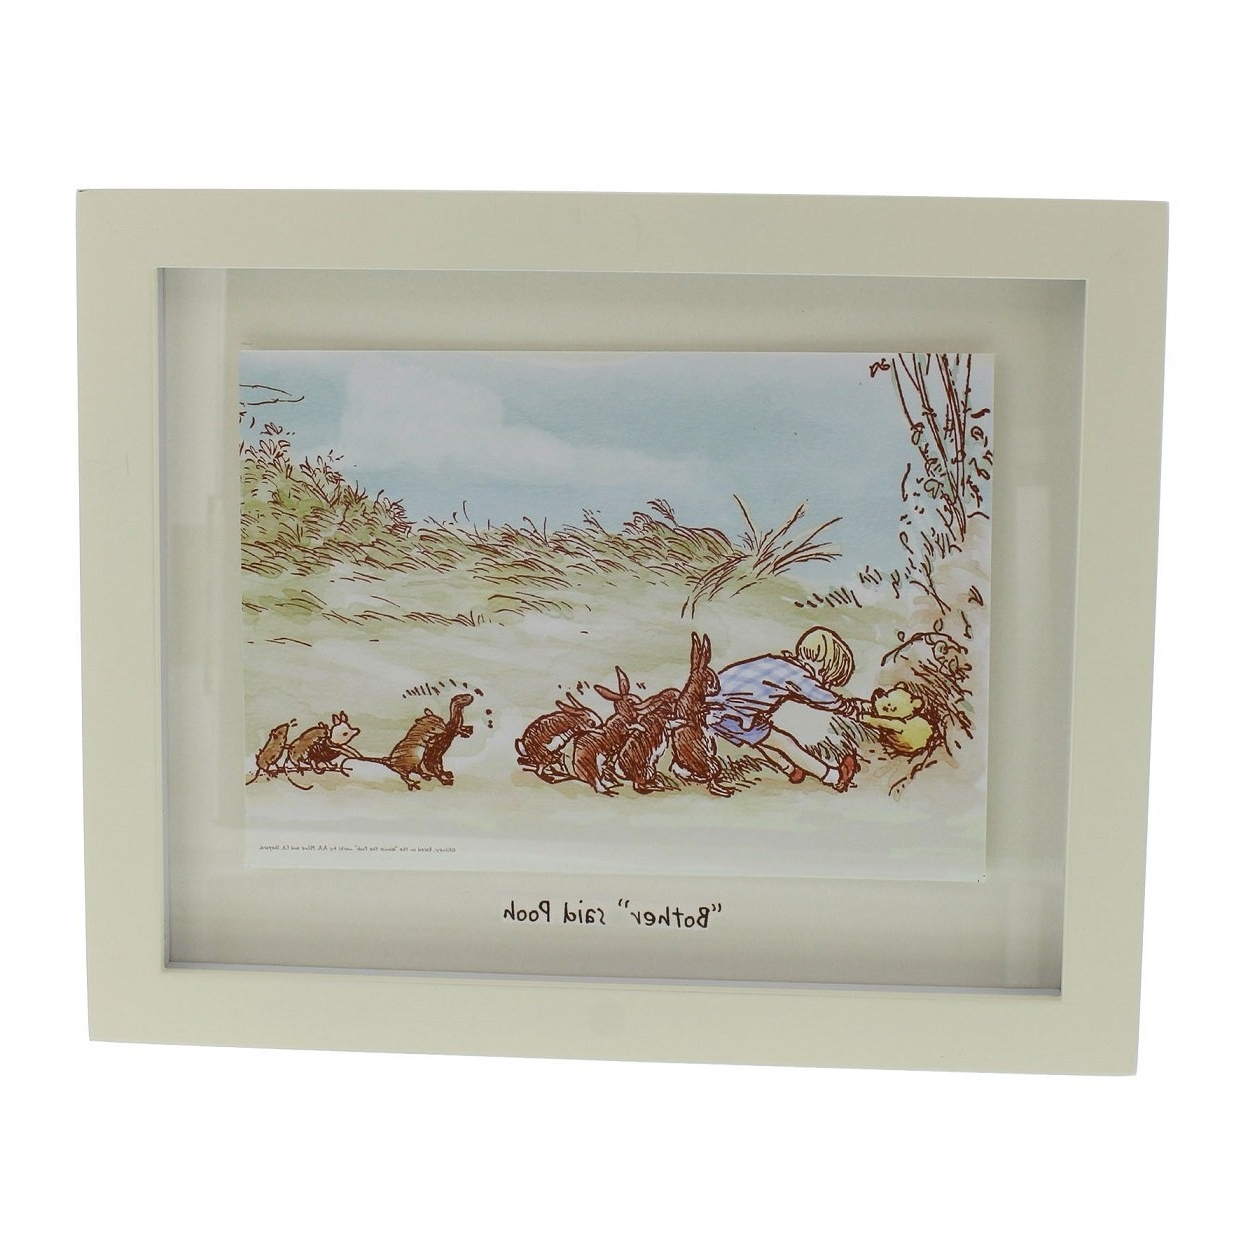 Disney Classic Winnie The Pooh Heritage Wall Art Decor Framed With Regard To Most Recently Released Winnie The Pooh Wall Art (Gallery 14 of 15)